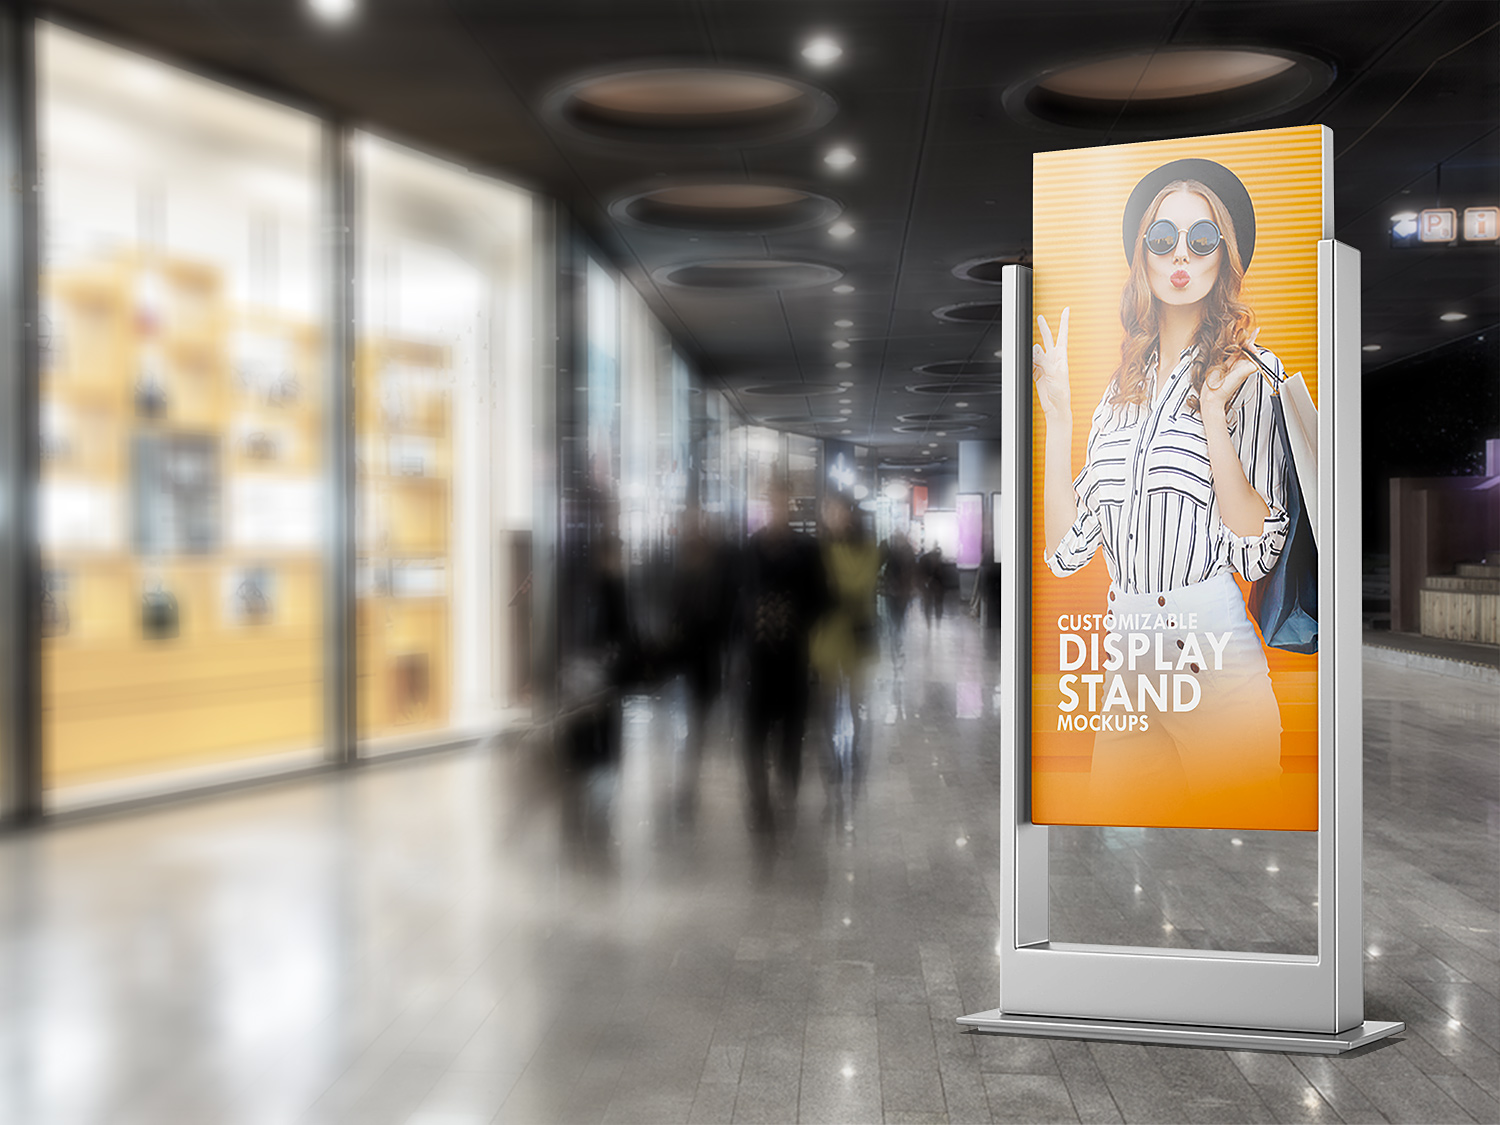 Exhibition Stand Free Mockup : Exhibition stand booth mockup royalty free vector image